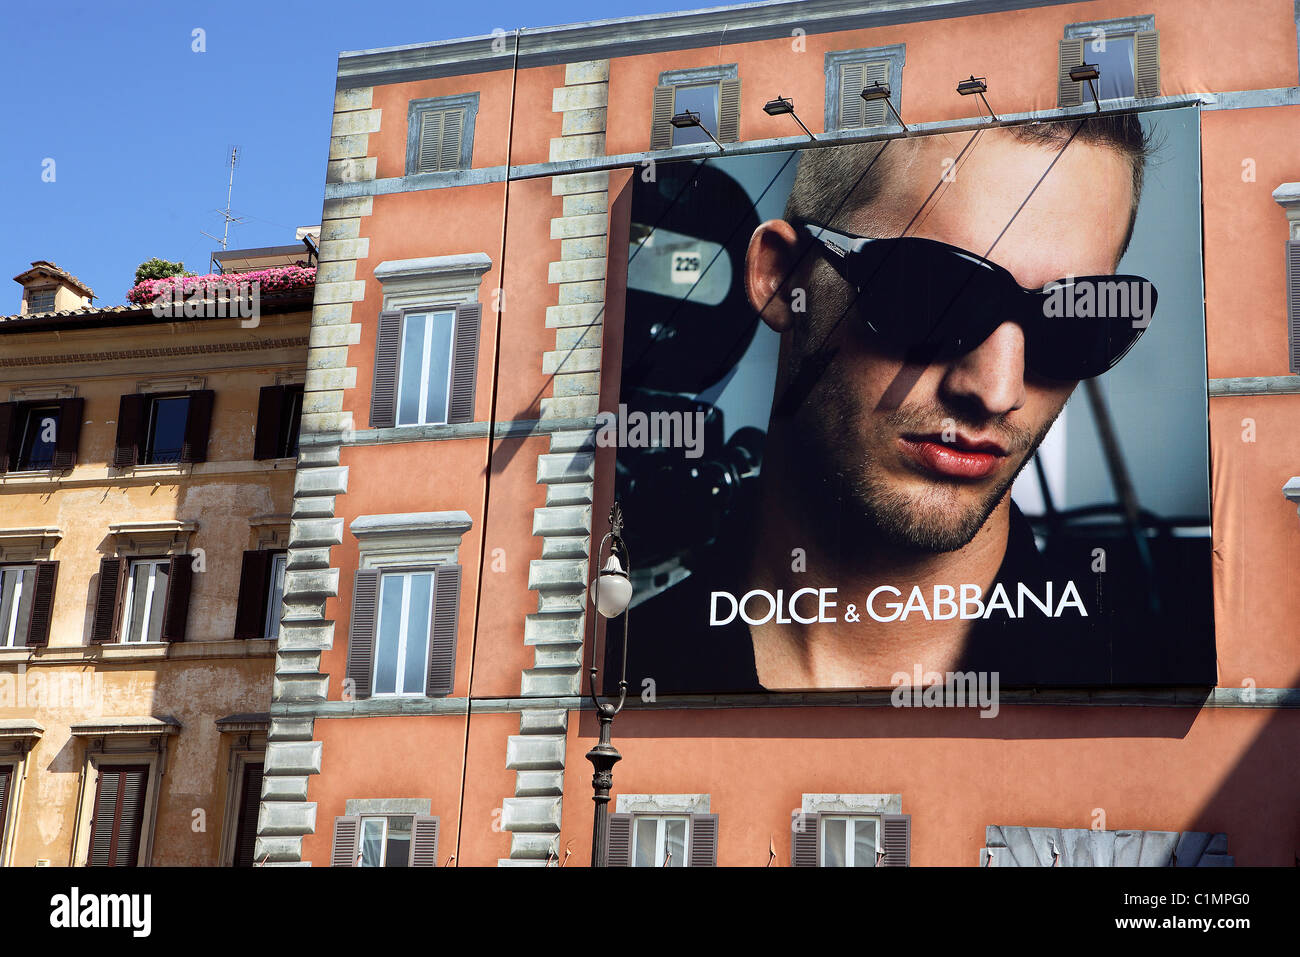 Italy, Lazio, Rome, Dolce et Gabbana advertising - Stock Image